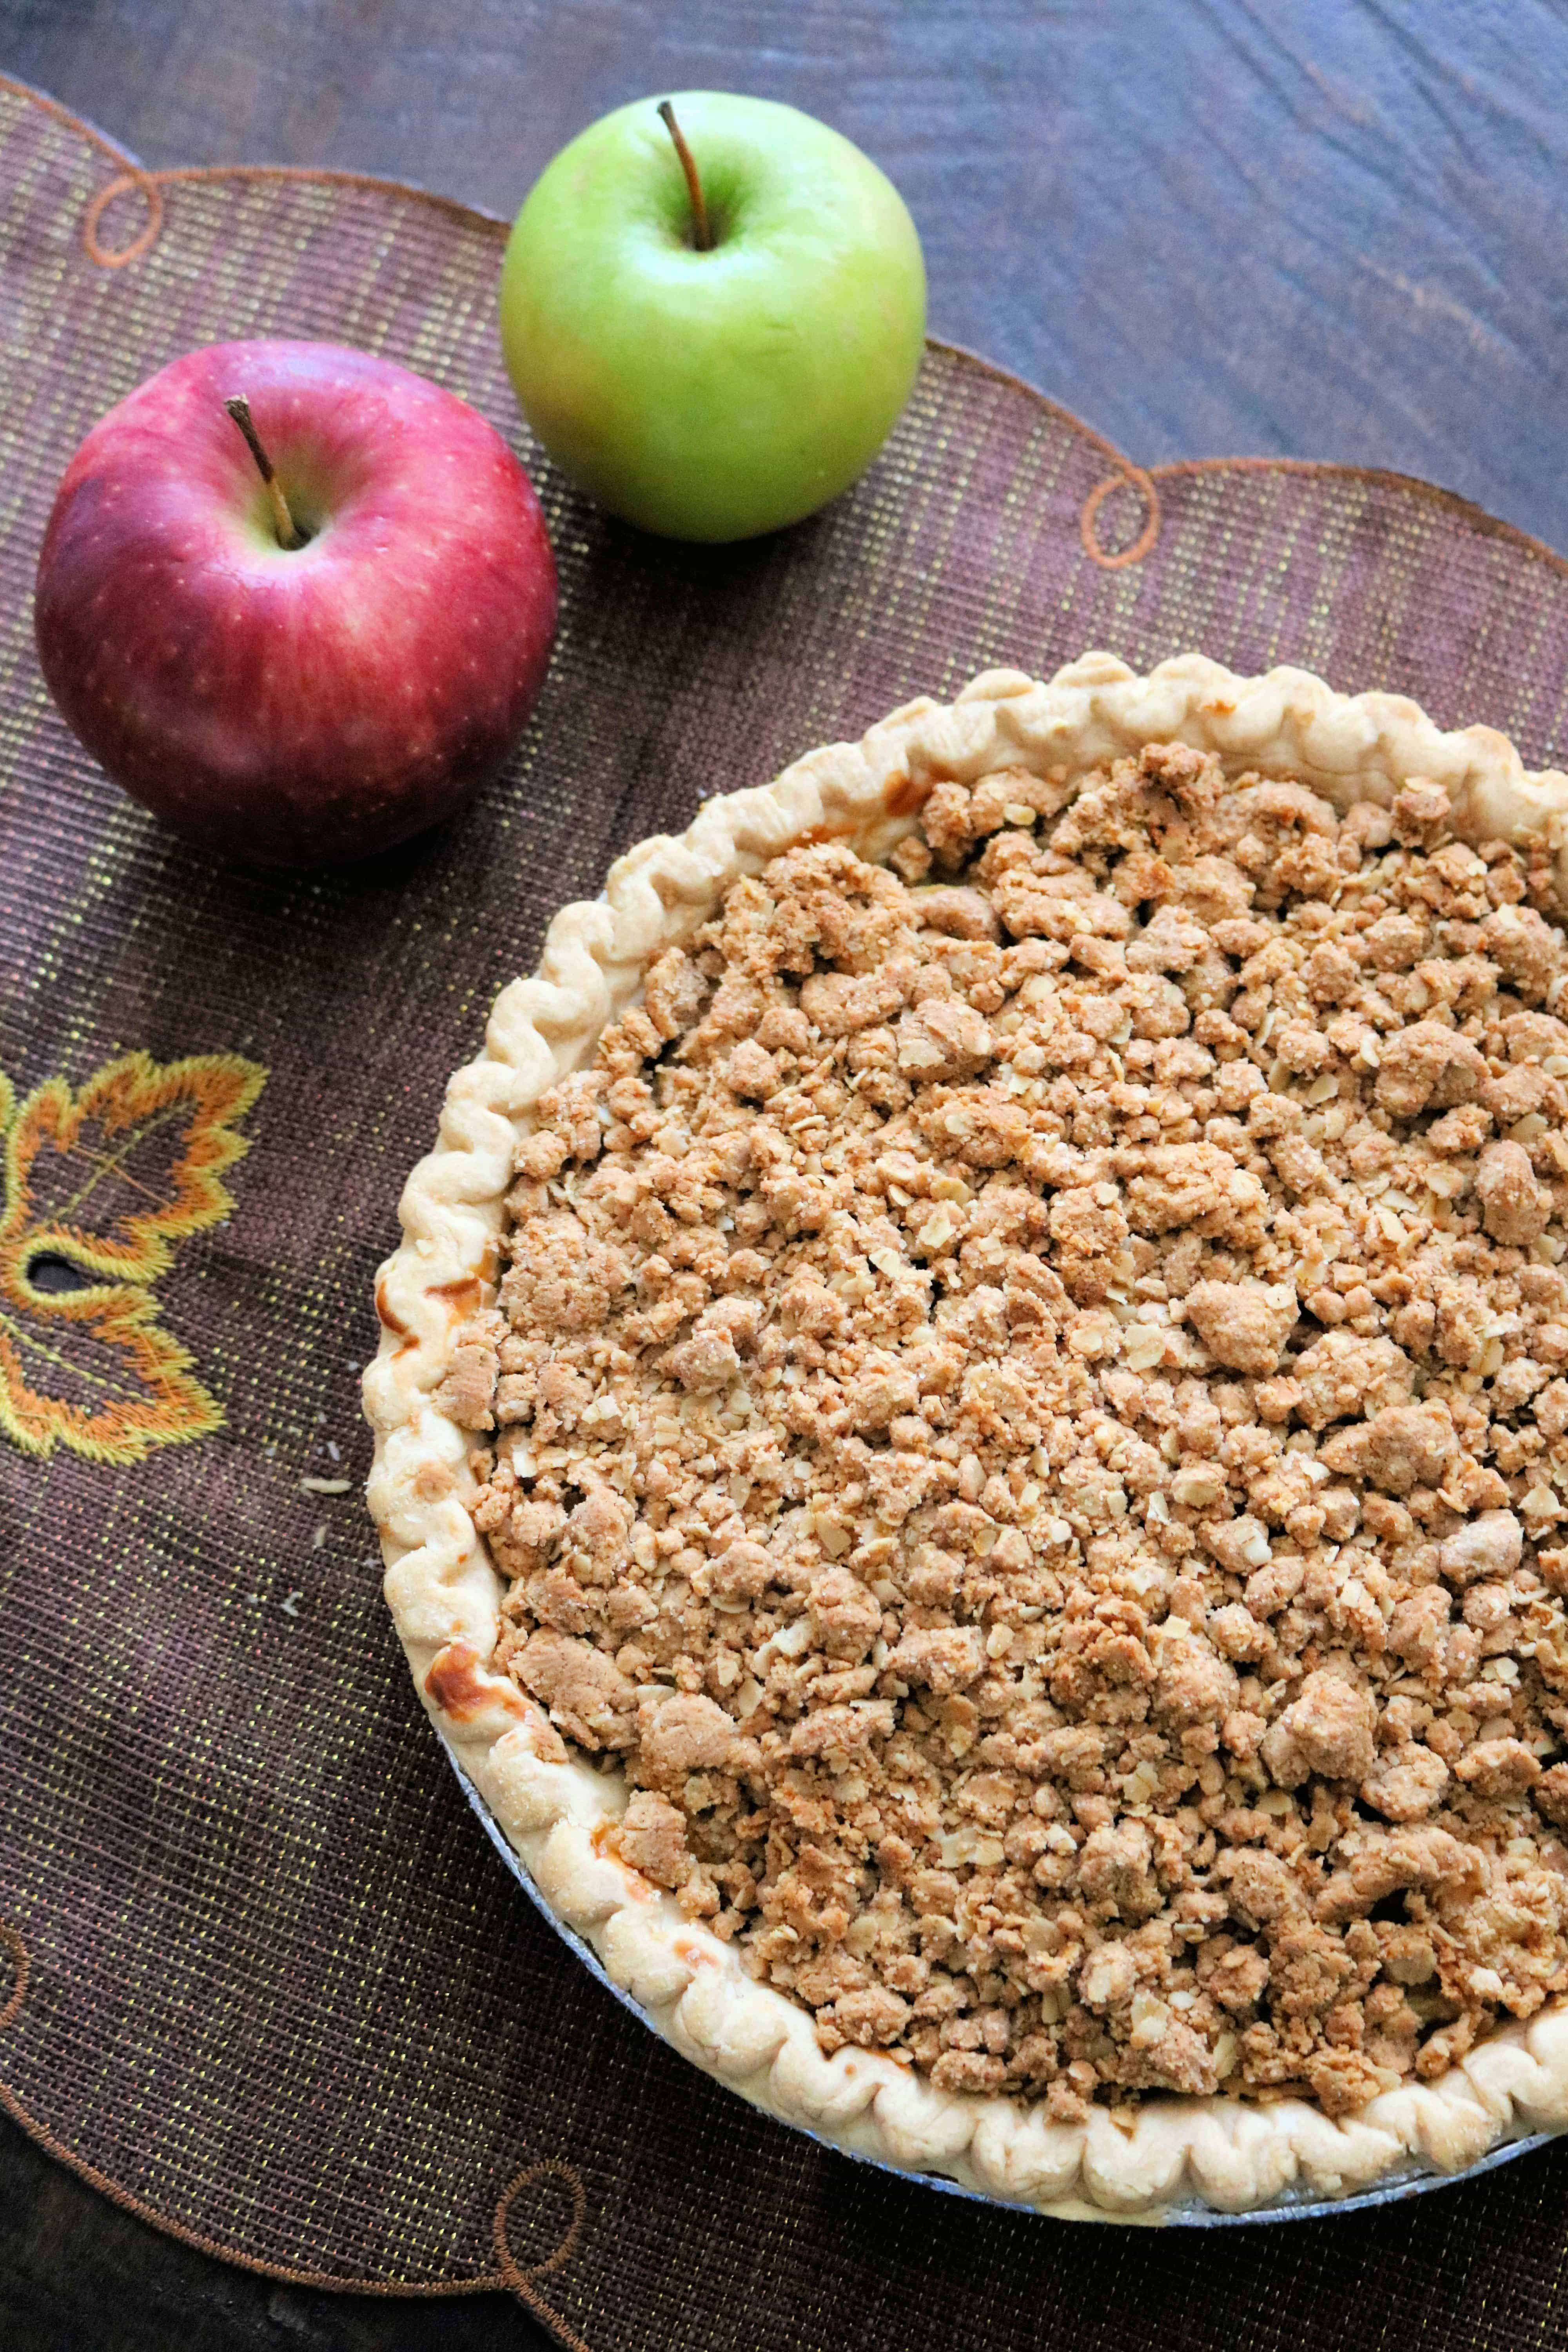 Looking for the best apple crumb pie recipe? This easy homemade Peanut Butter Crumb Apple Pie is made with granny smith apples, red gala apples, and a peanut butter and oats crumble topping for the best peanut butter apple pie you'll ever eat! #applepie #applepierecipe #applecrumbpie #crumbapplepie #peanutbutterapplepie